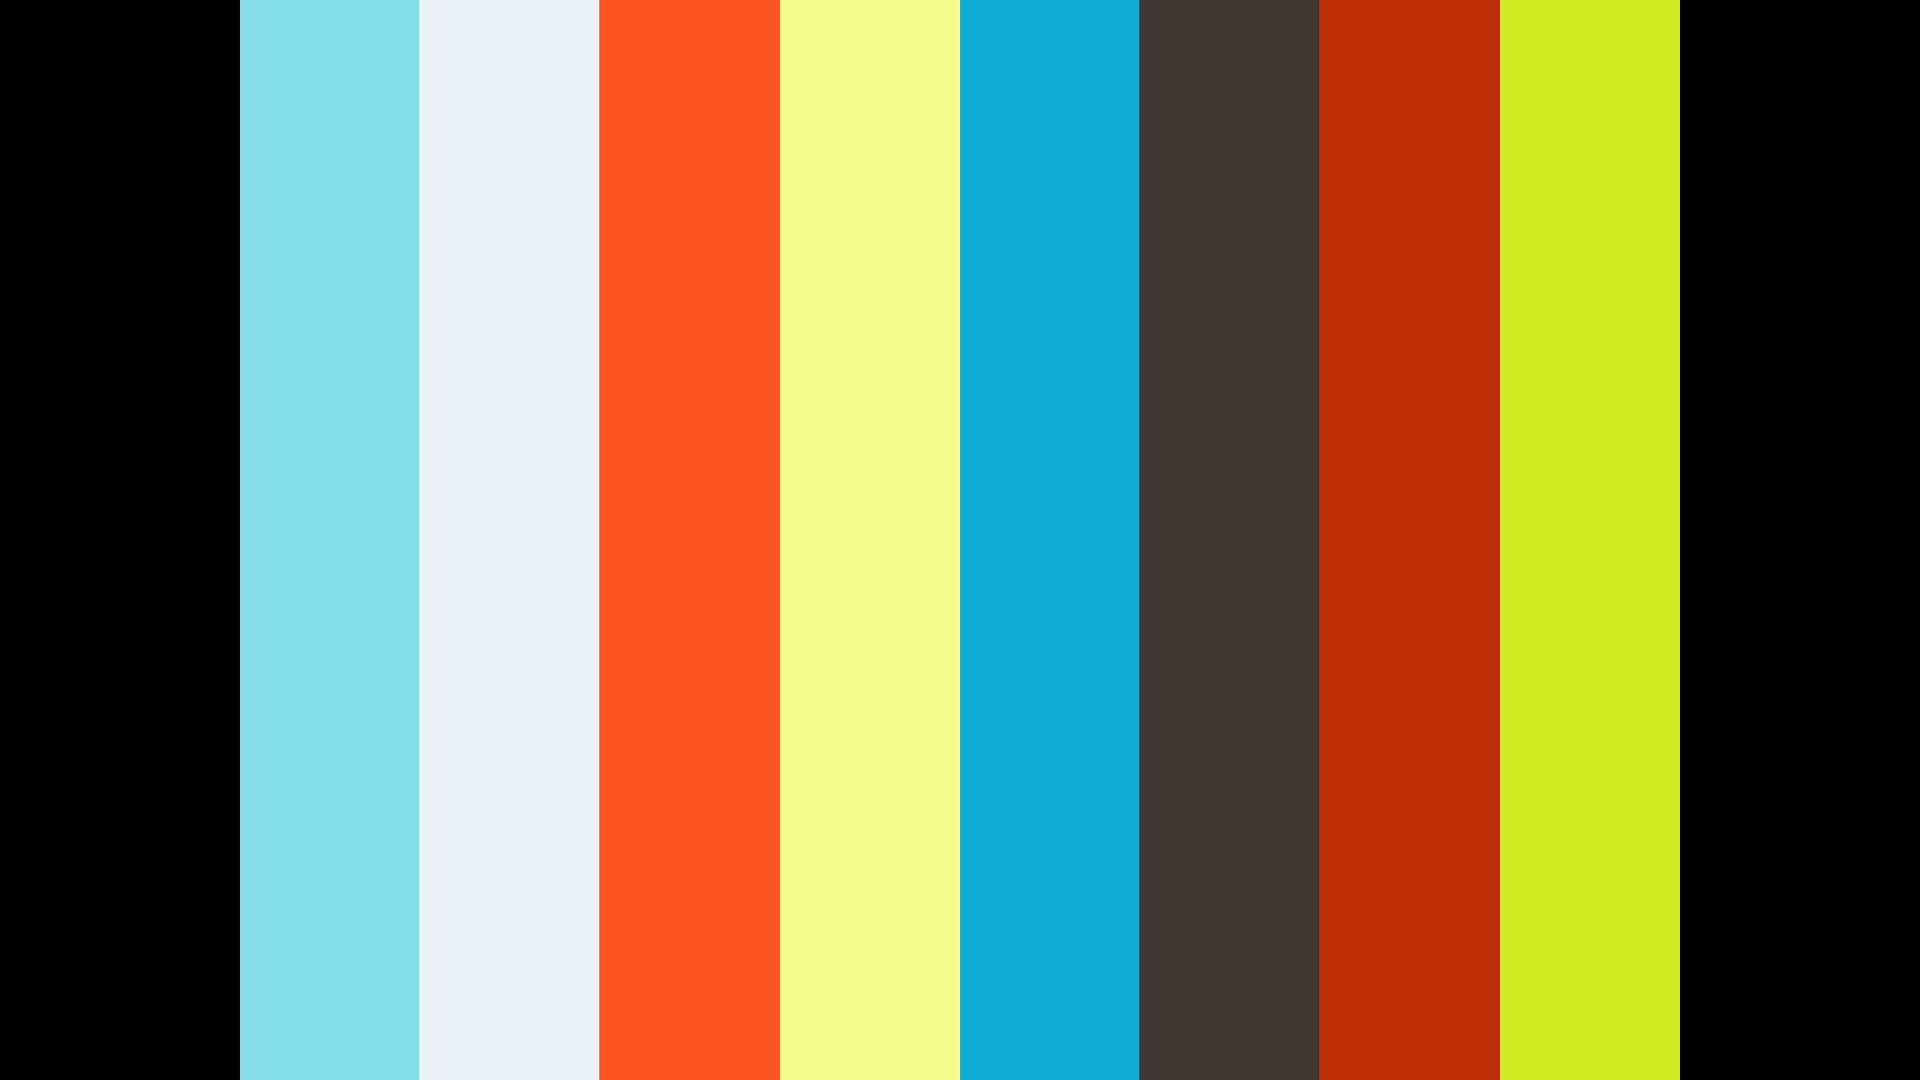 David Guttenfelder Presentation - Eddie Adams Workshop 2020